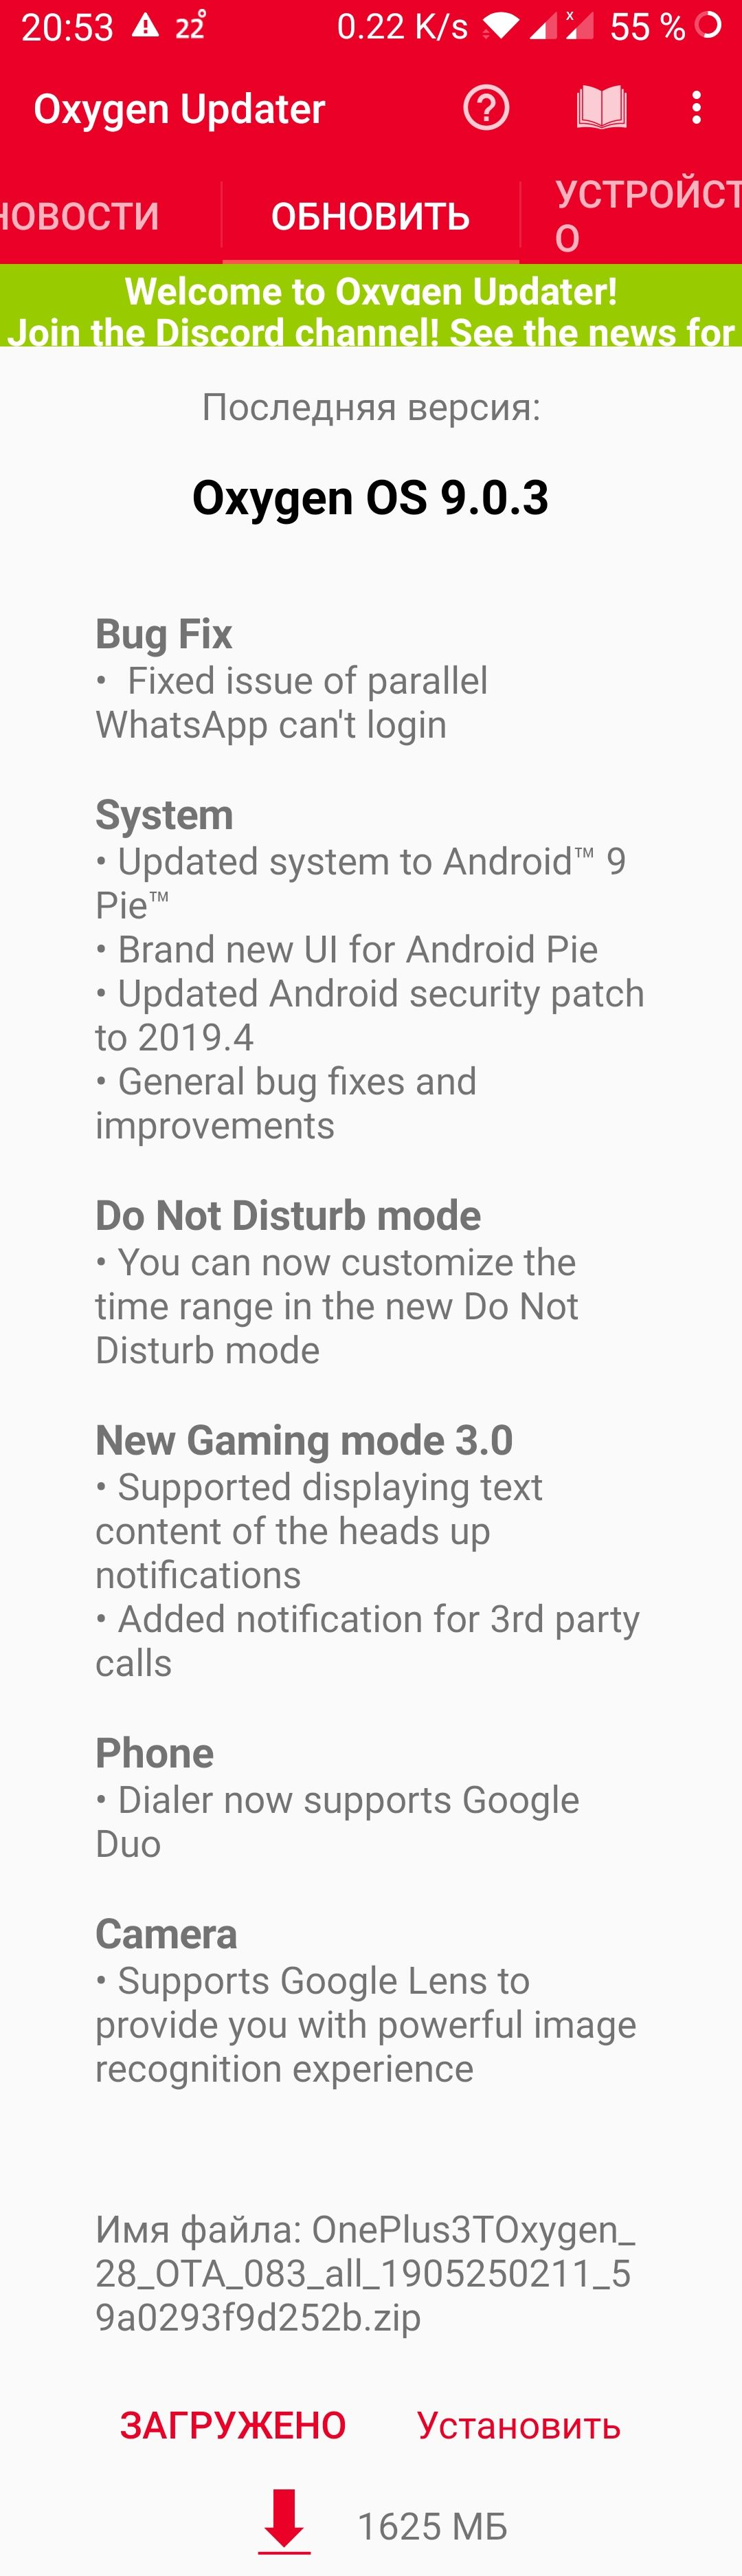 OxygenOS 9 0 2 (9 0 3) based on Android PIE for OnePlus 3